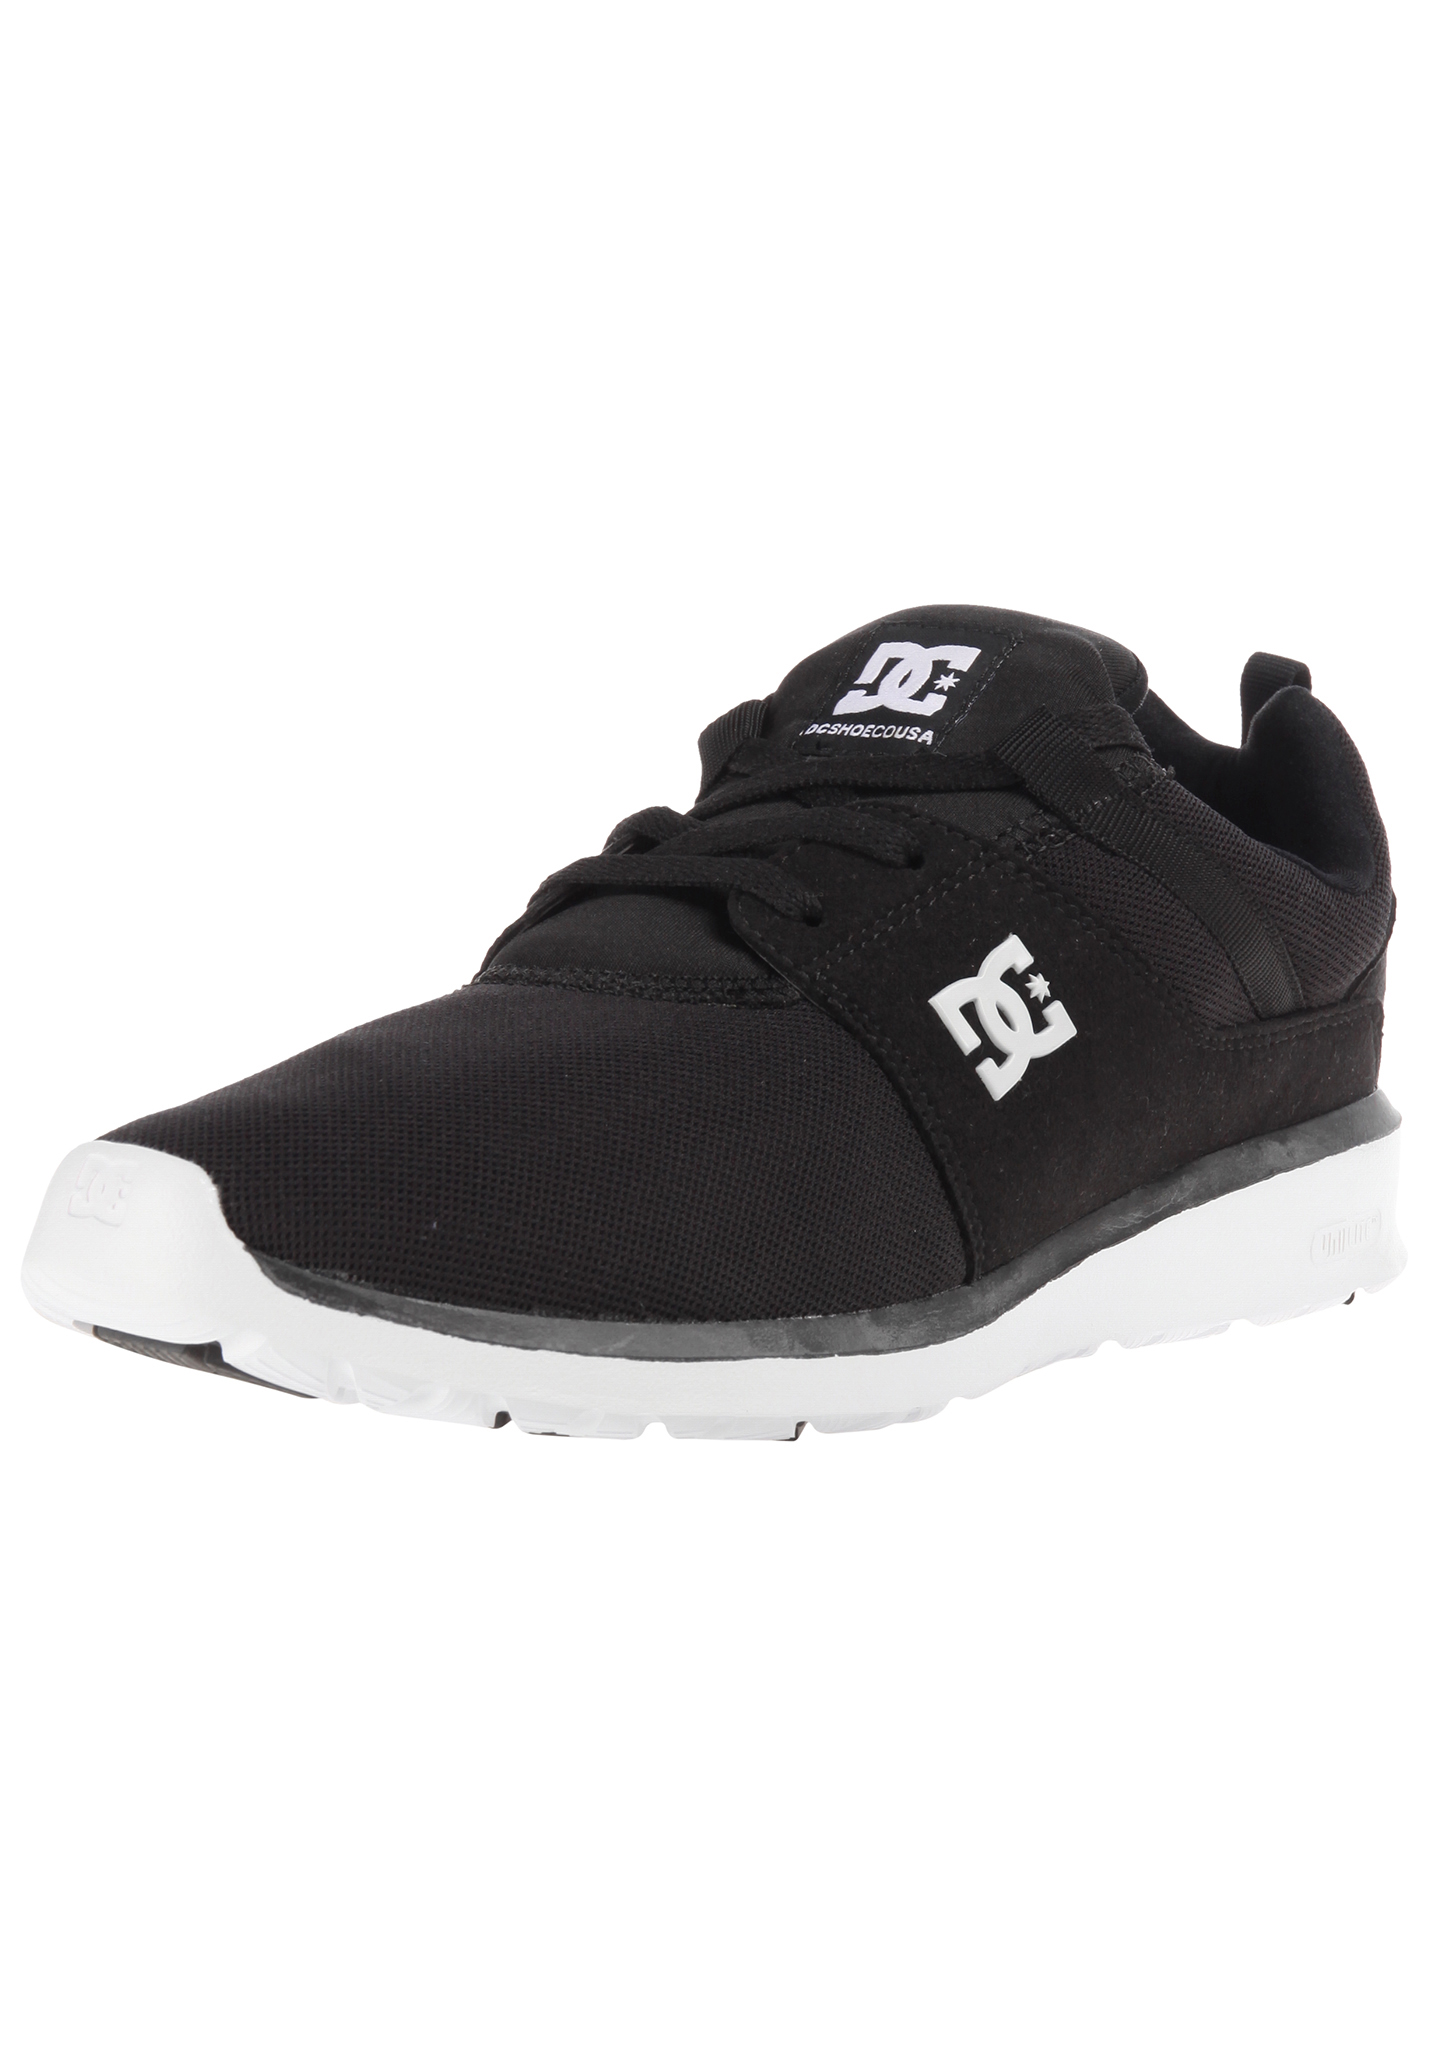 dc heathrow herren damen sneaker turnschuhe freizeit schuhe sneakers ebay. Black Bedroom Furniture Sets. Home Design Ideas